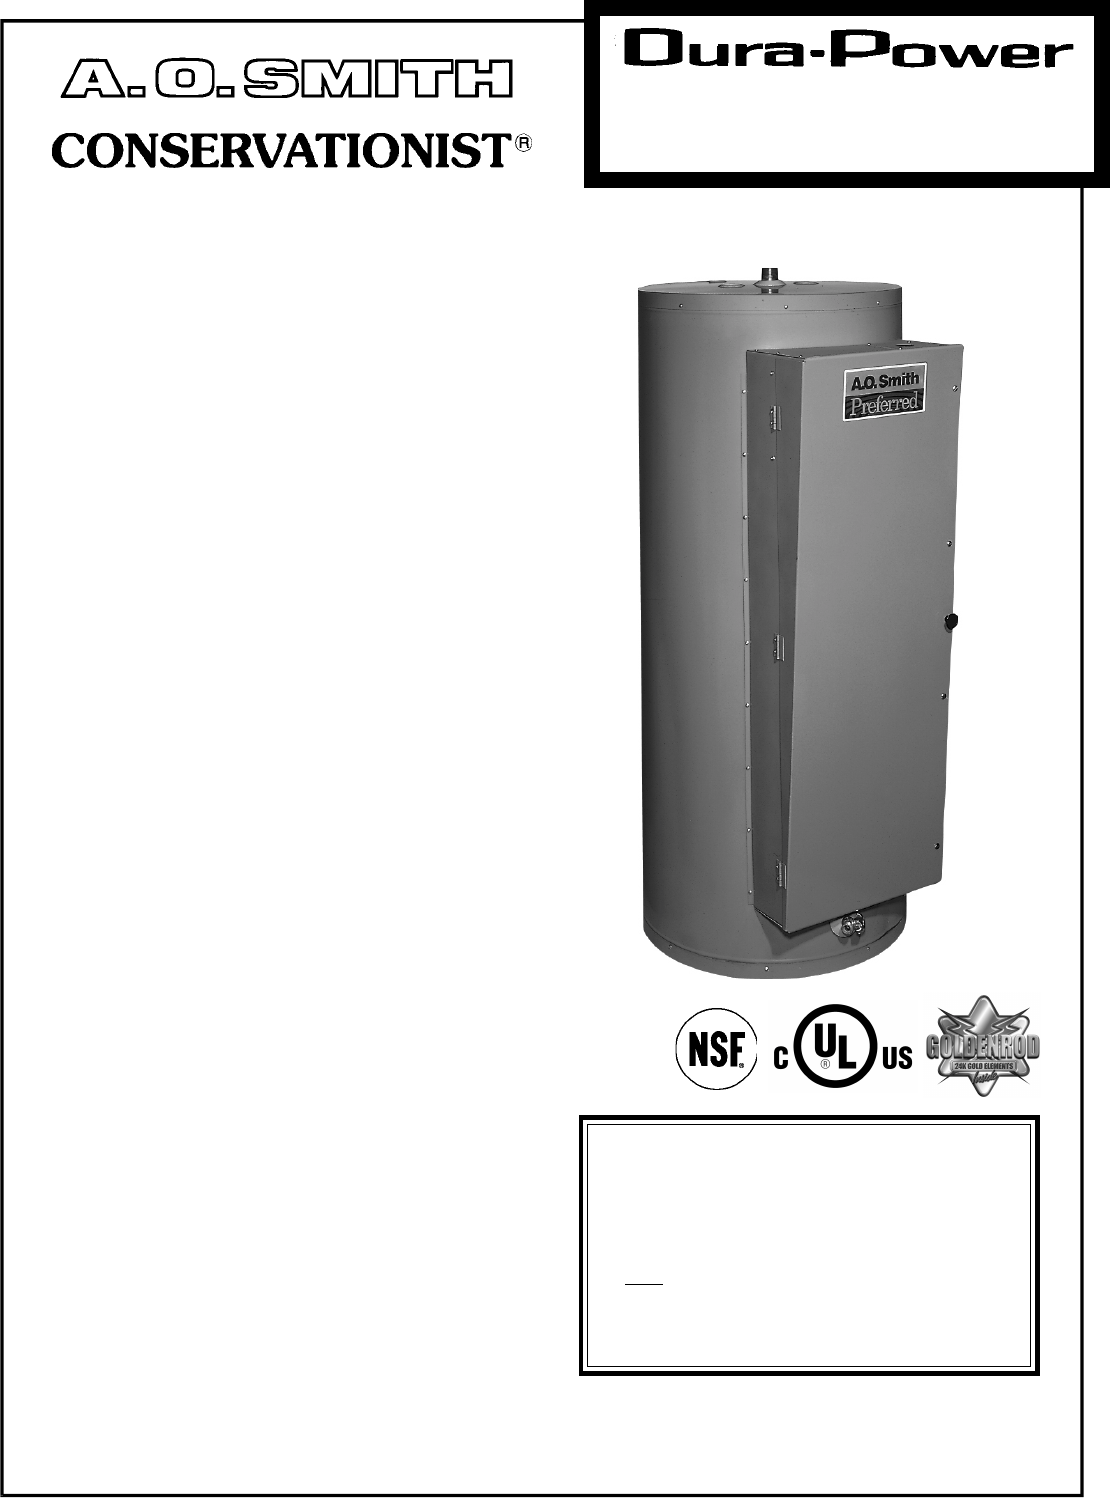 dre 120 ao smith water heater wiring diagram dre discover your ao smith water heater dre 120 user guide manualsonline